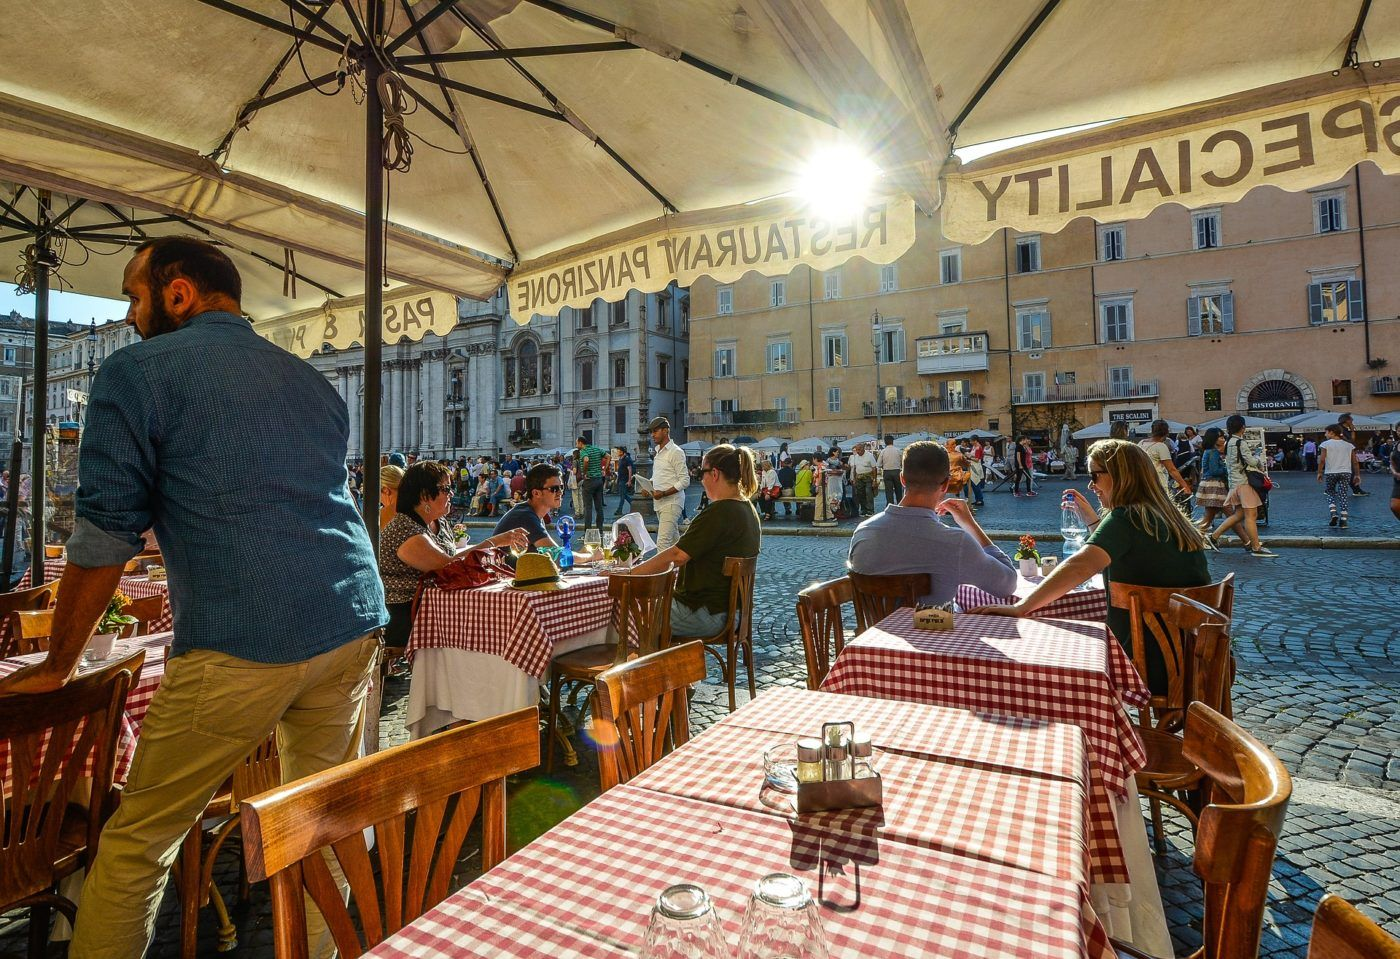 Rome Food Guide - Best Places To Eat In Rome - A Guide To The Best Food In Rome